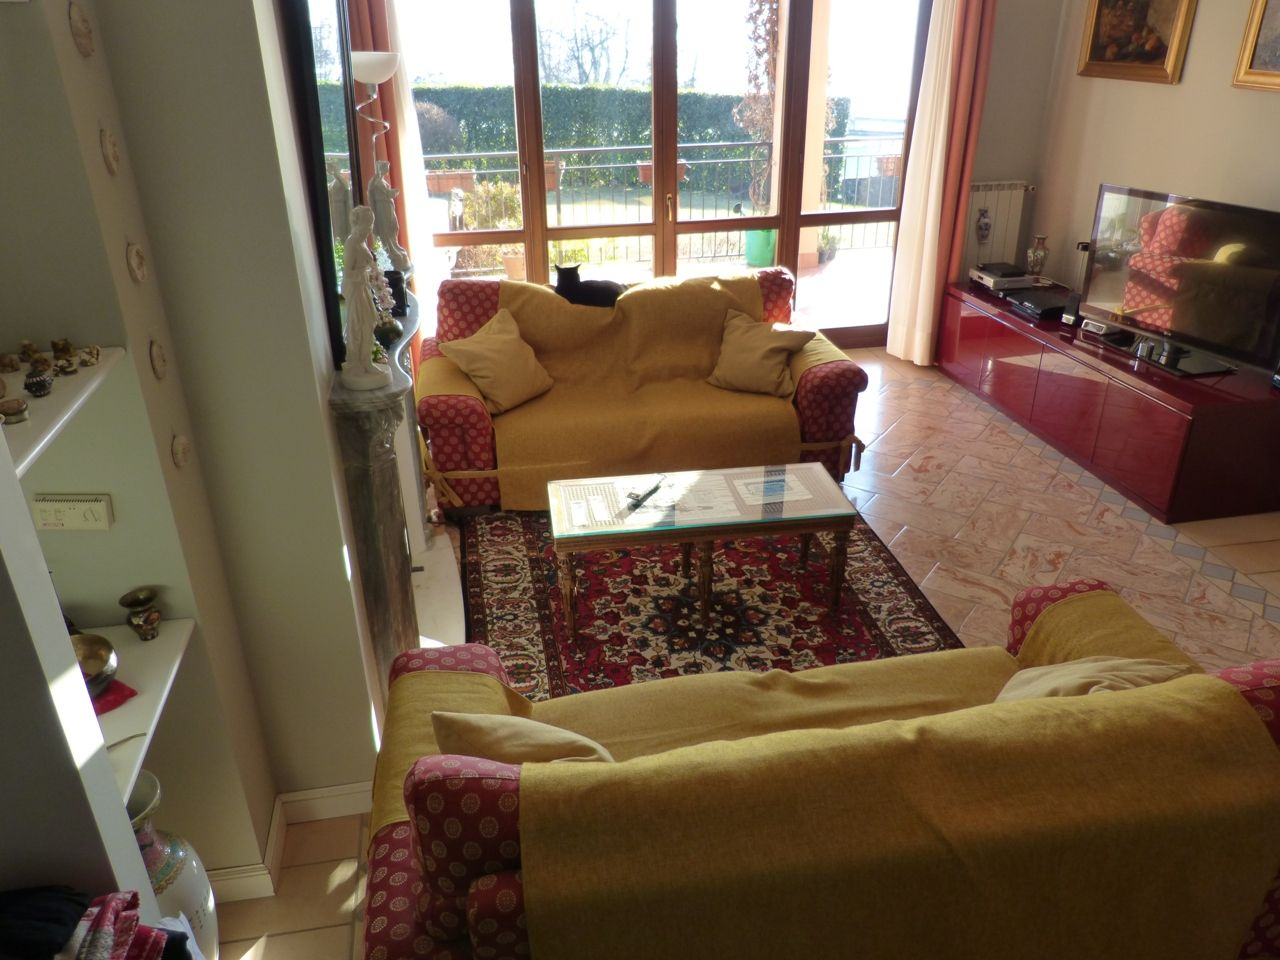 Lake View House In Arizzano 3 Bedroom With Garden And Garage